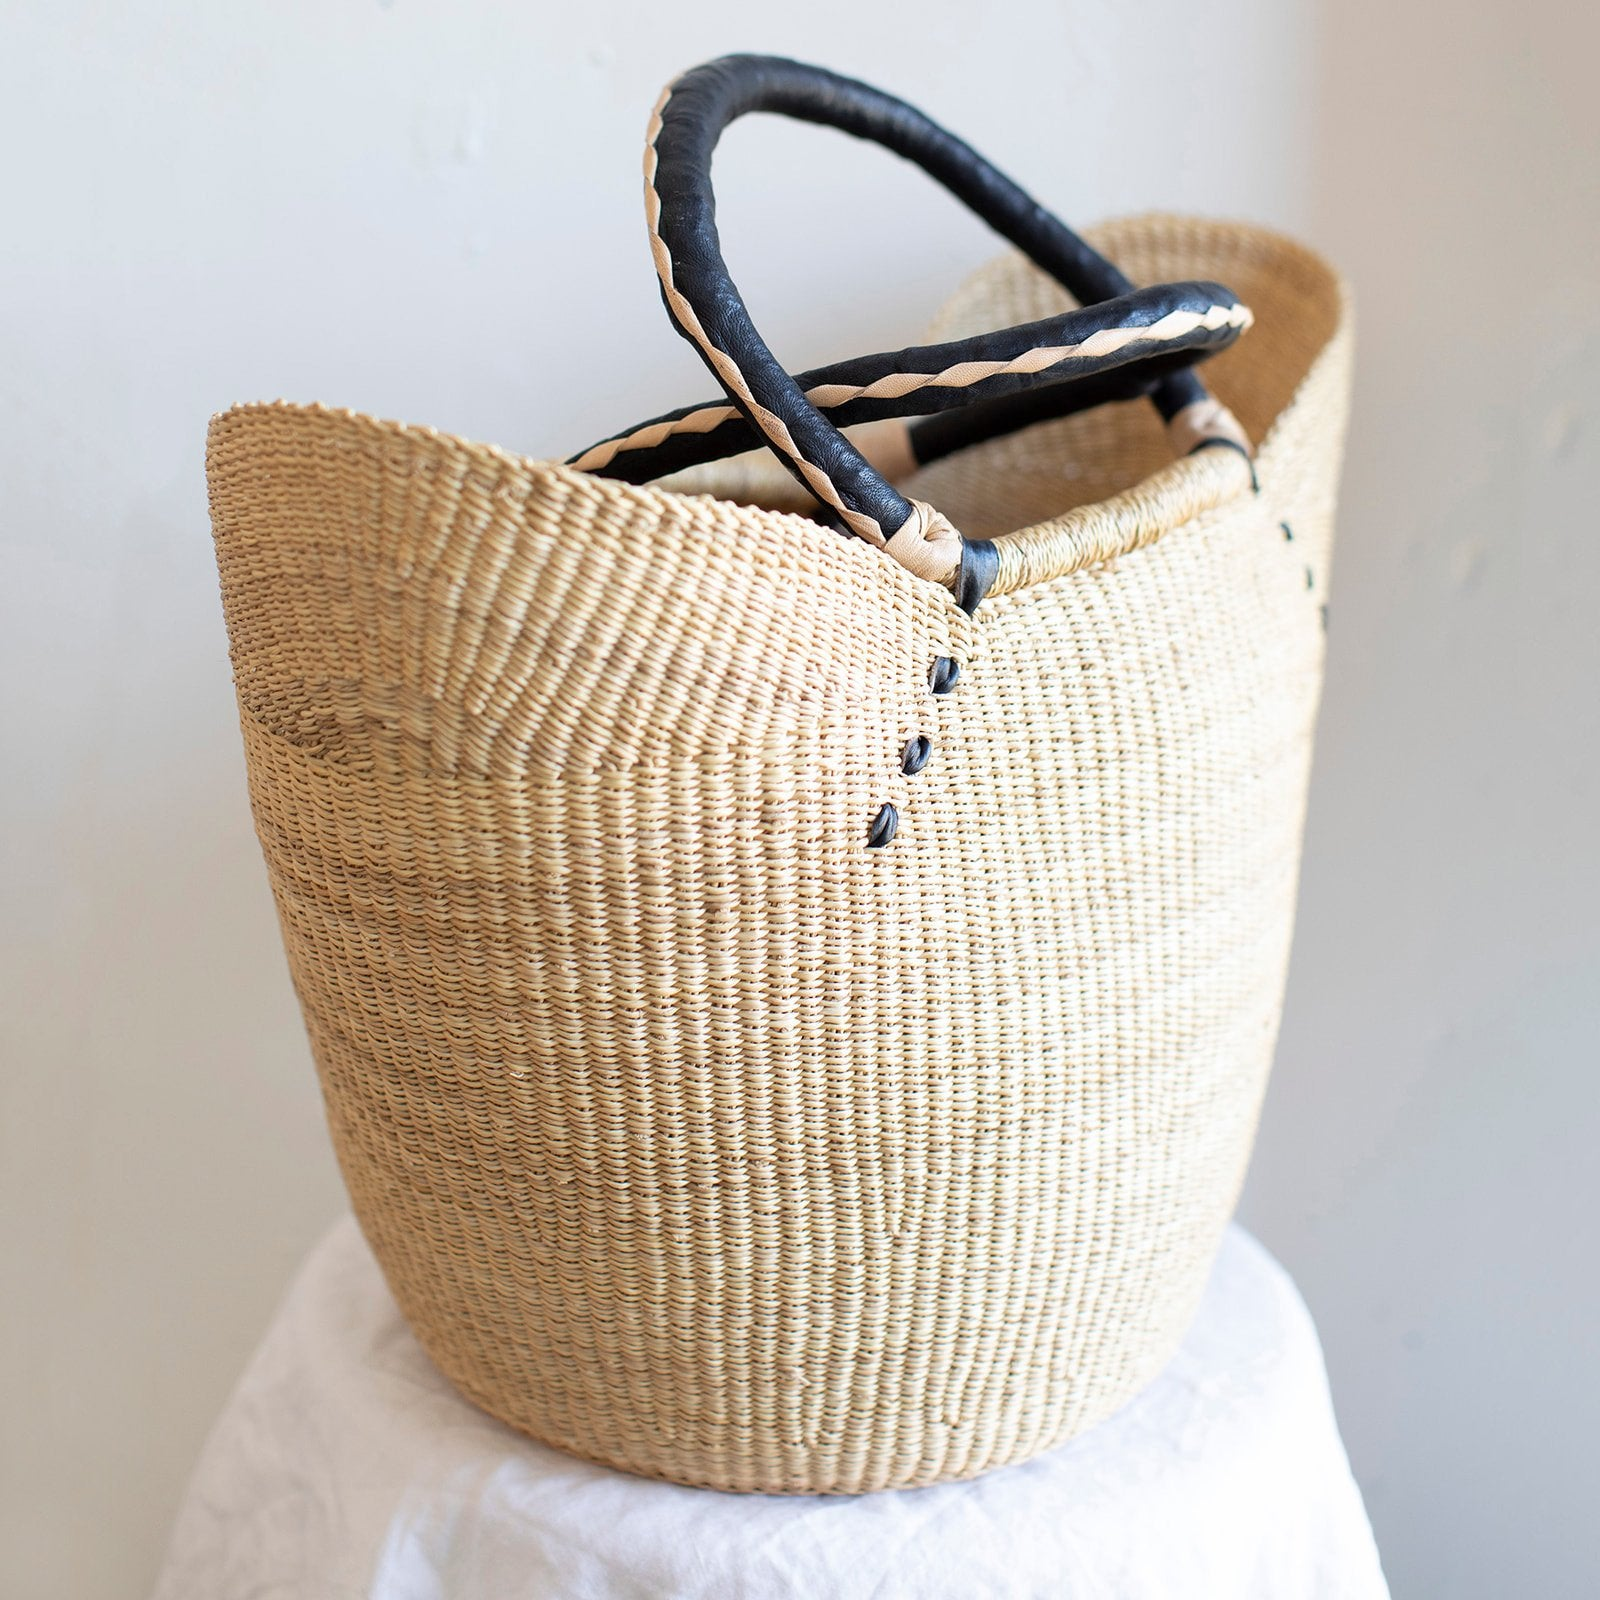 Handwoven market tote ethically made by Amsha in Kenya